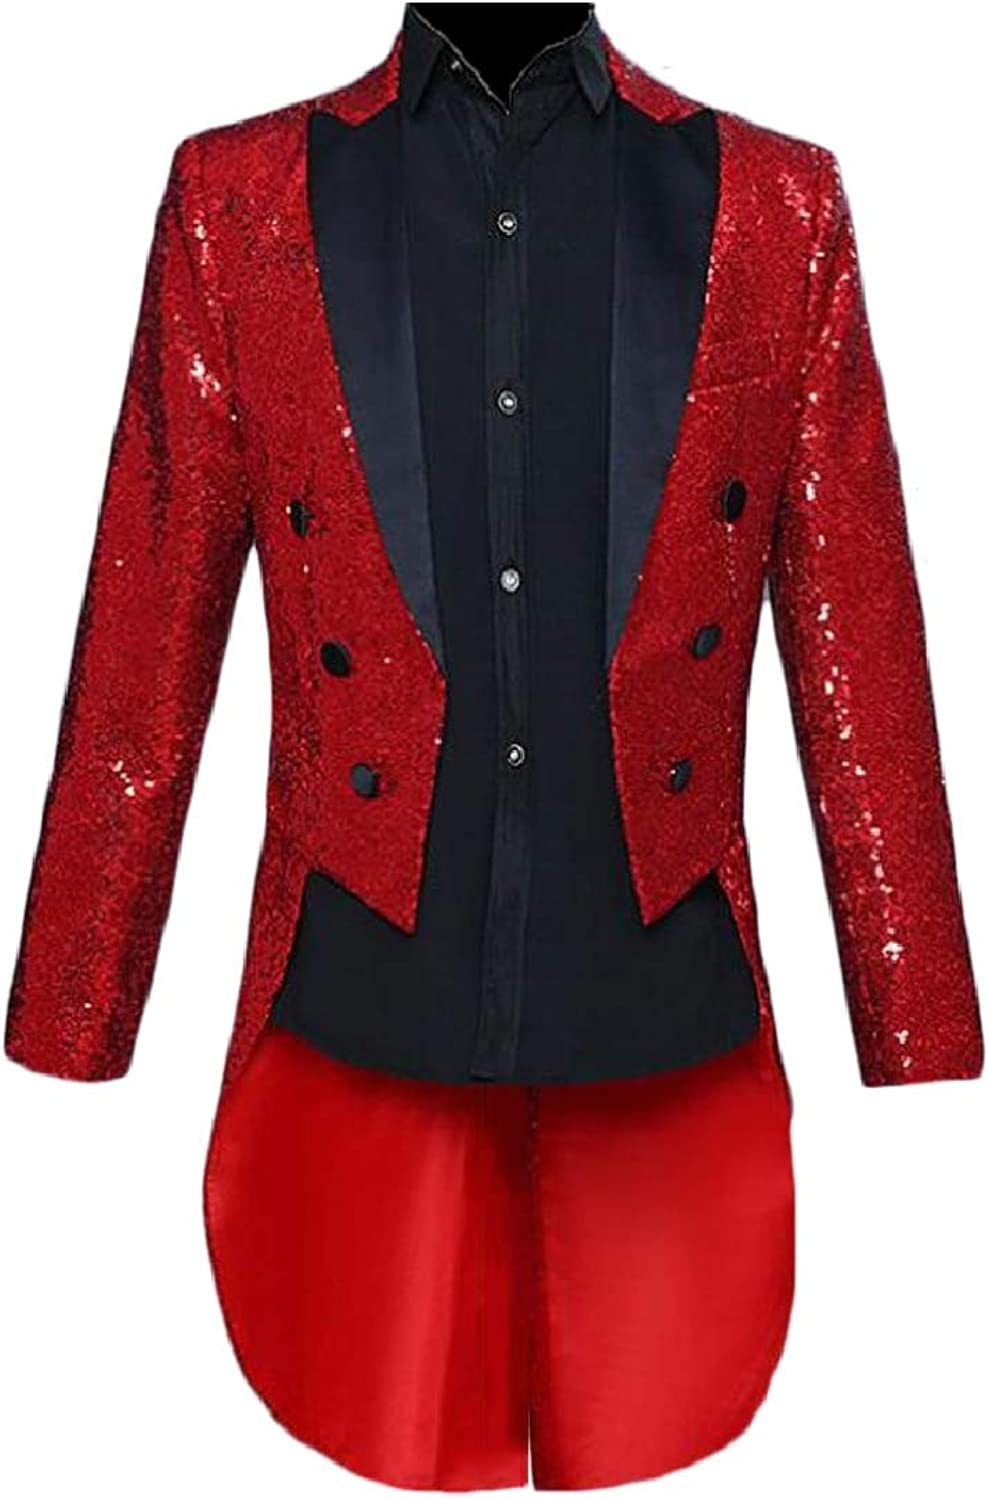 CBTLVSN Mens Slim Tailcoat Sequin Swallowtail Dinner Party Wedding Blazer Suit Jacket